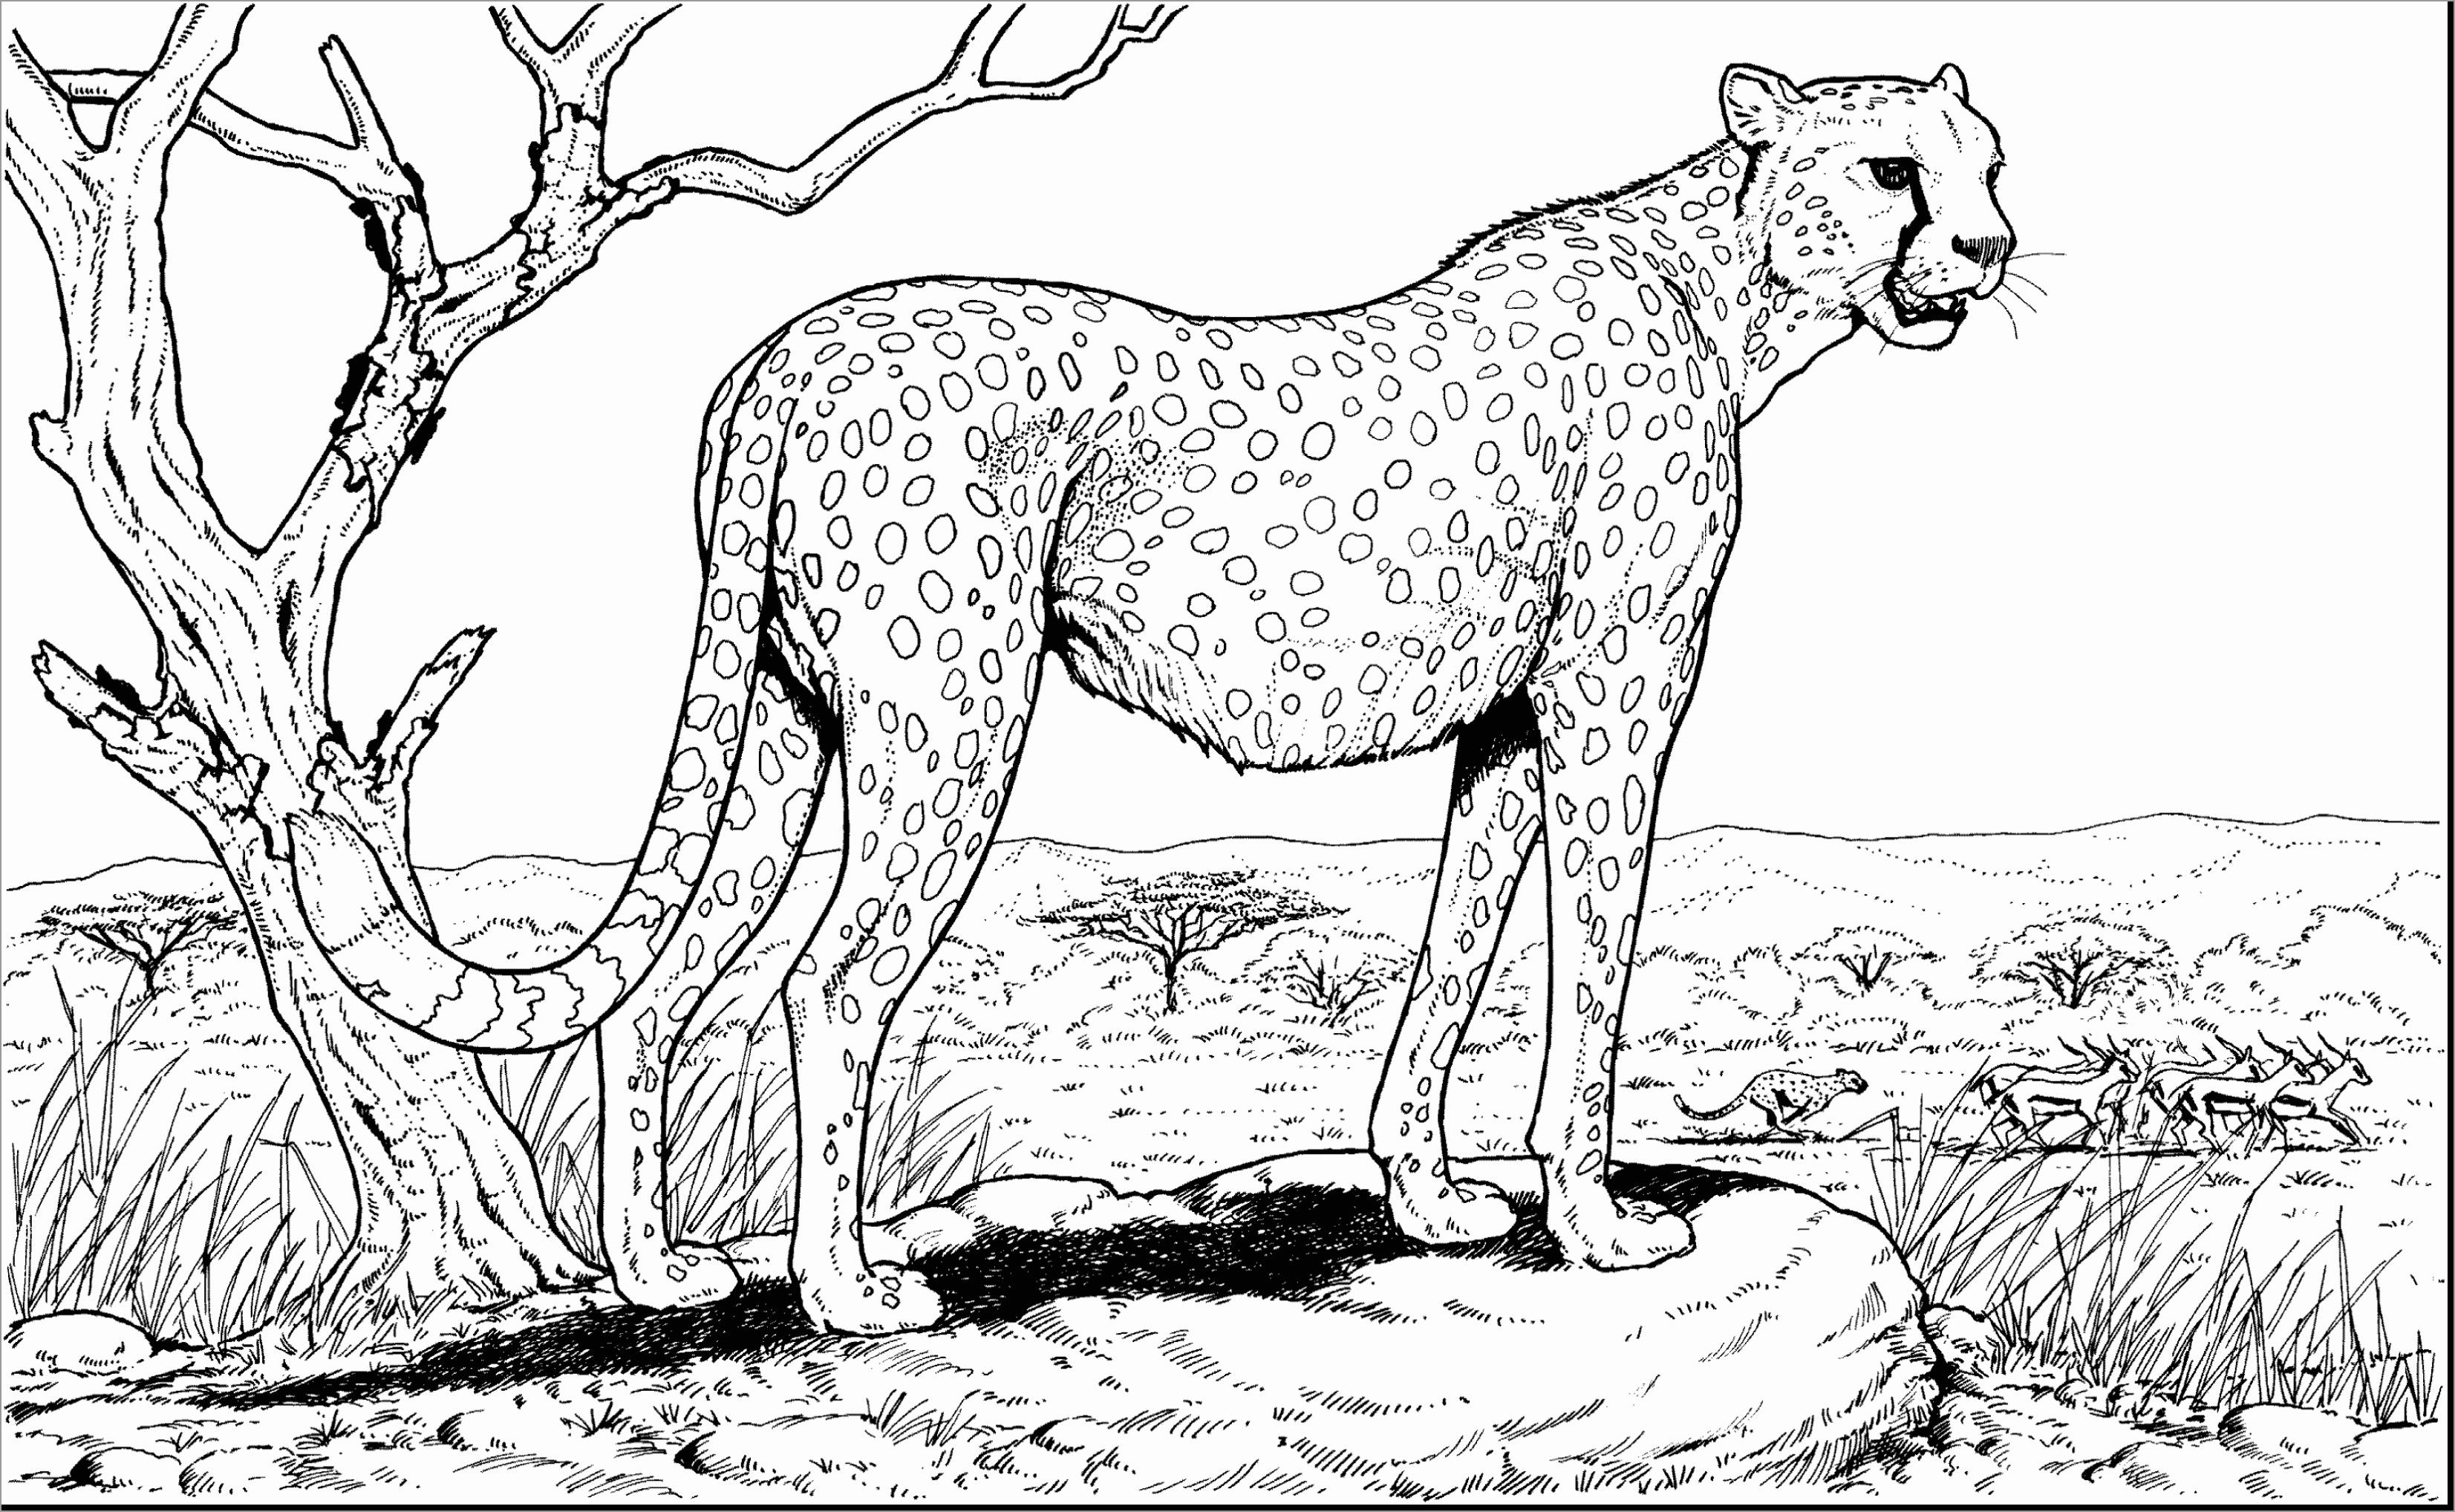 Perspective Cheetah Coloring Page In 2020 Coloring Pages Coloring Pages To Print Coloring Pictures